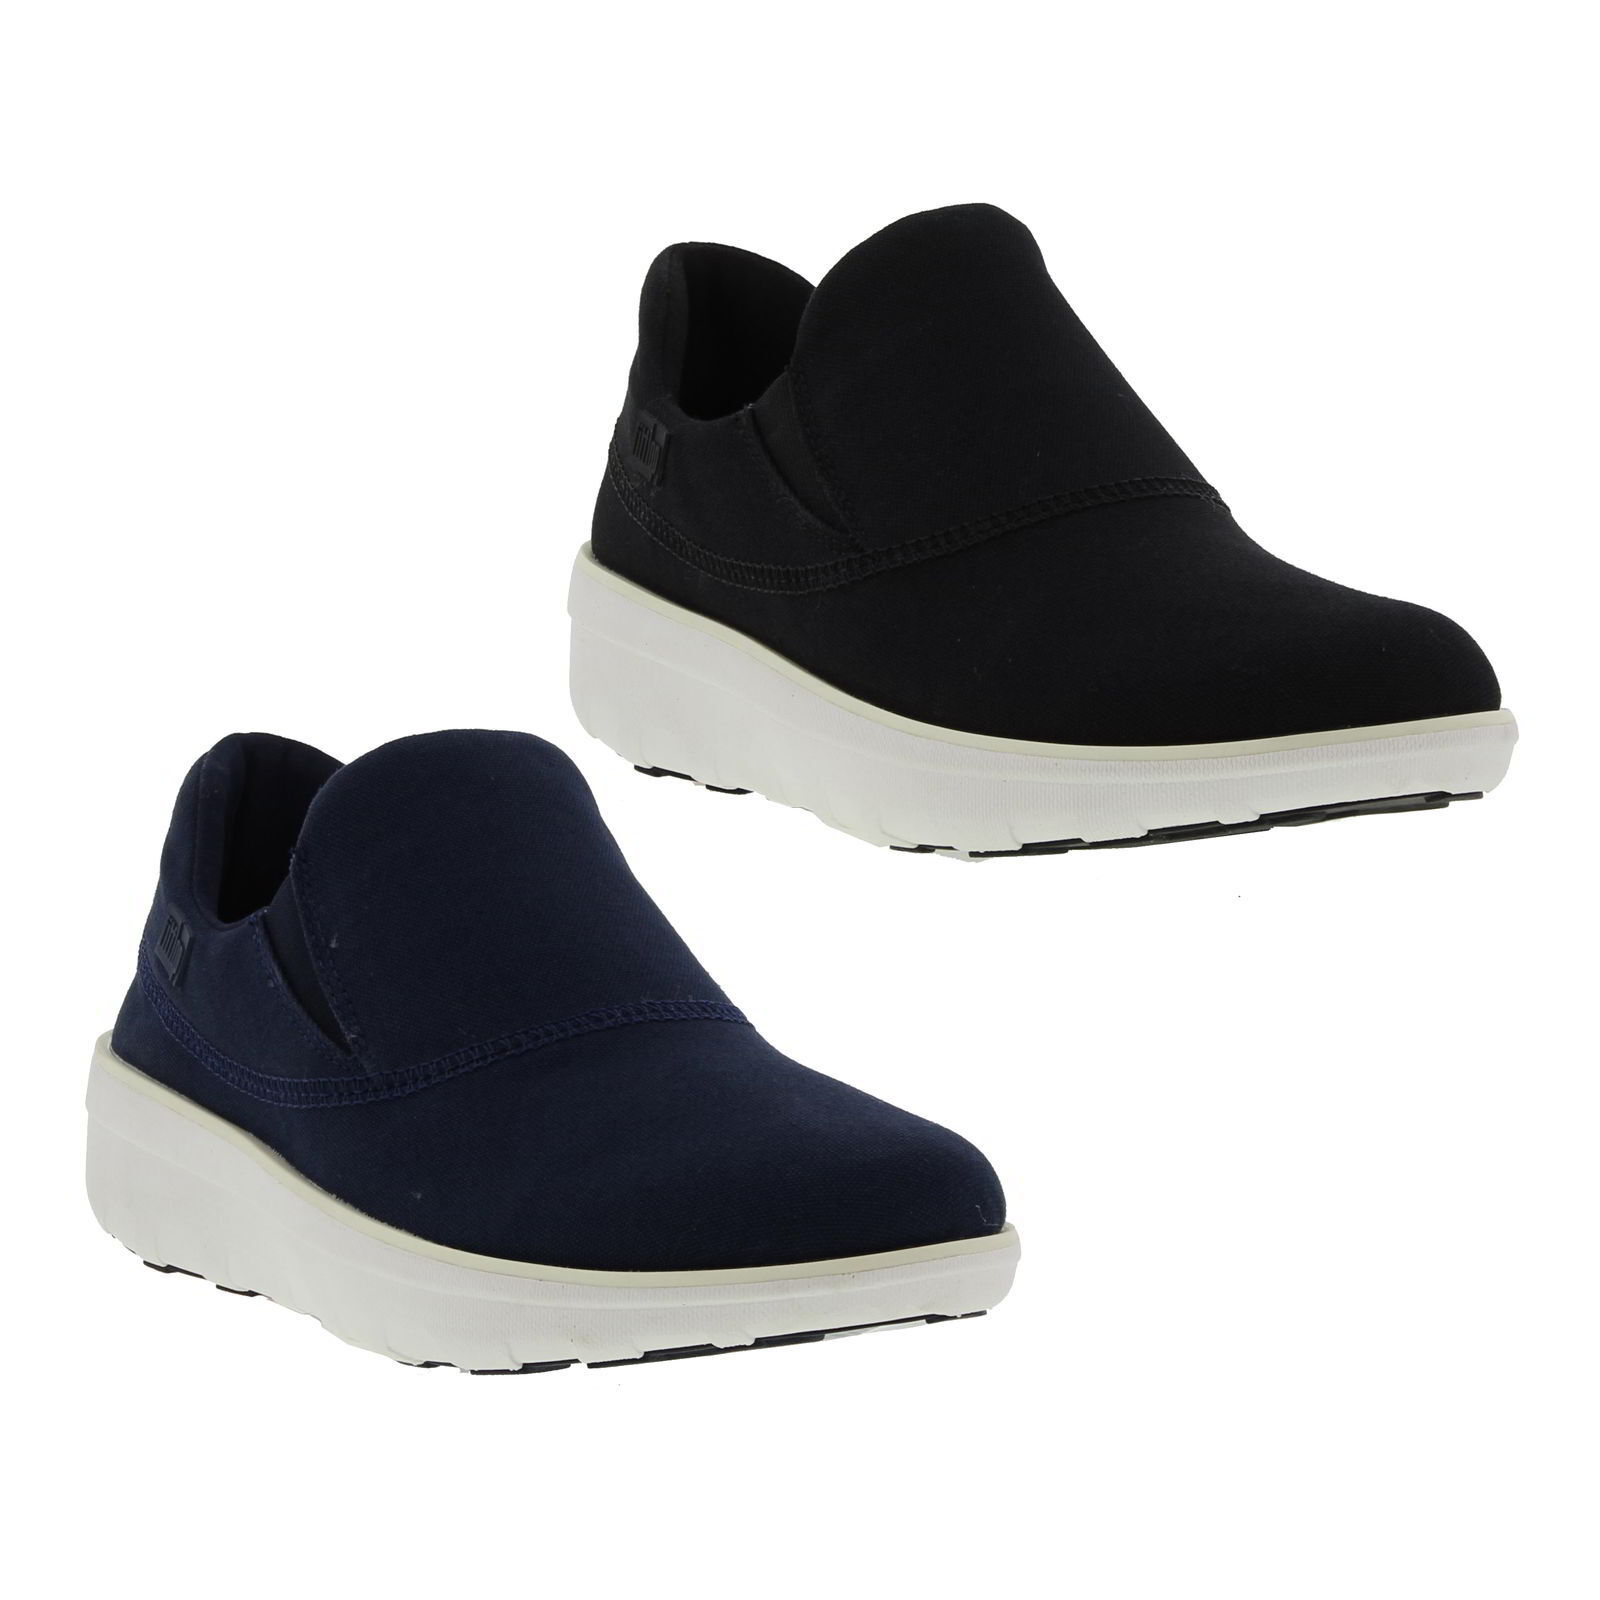 Zapatos promocionales para hombres y mujeres Fitflop Loaff Sporty Slip On Sneakers Womens Black Blue Canvas Trainers Size 4-8